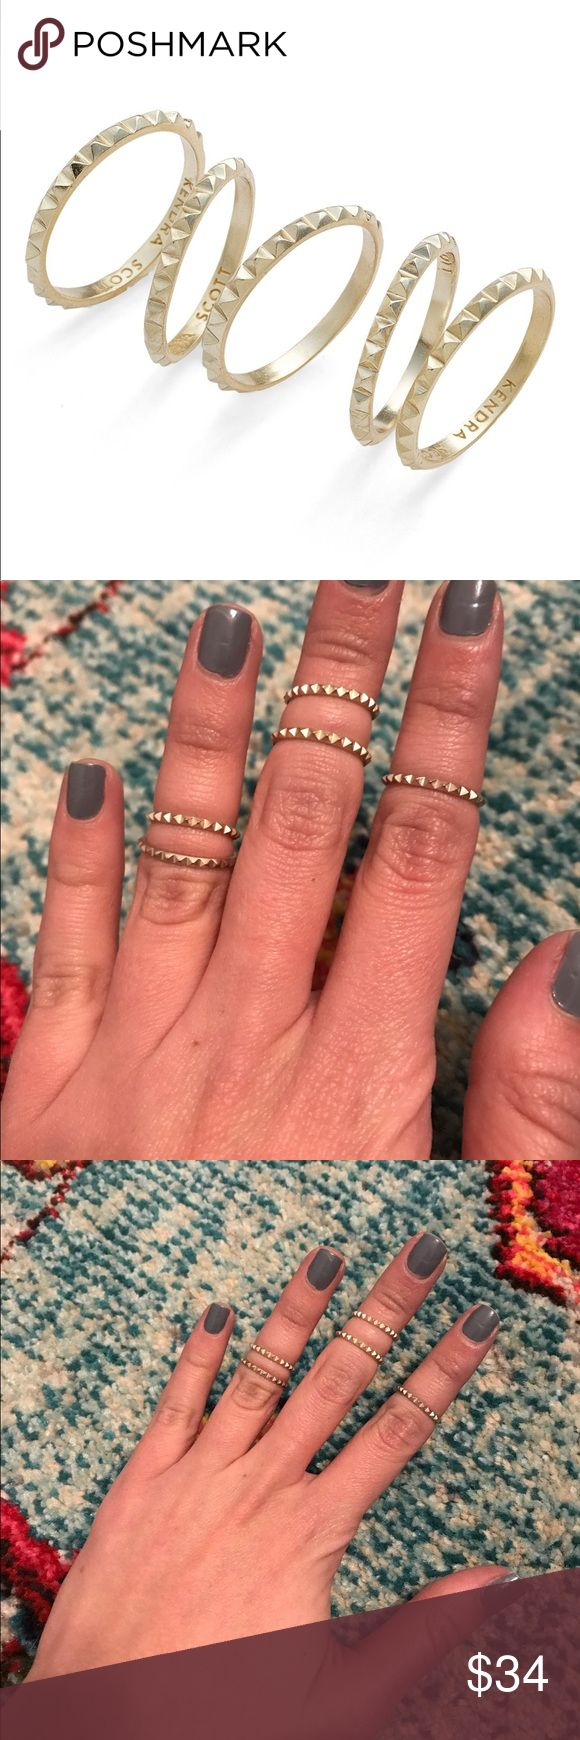 Kendra Scott Tucker Midi Rings Have been gently worn. Part of 2016 spring collection. NO LONGER SOLD. Comes with 5. All different sizes but does not specify sizes when purchased. From photos you can see all the different places it can hit on the finger Kendra Scott Jewelry Rings